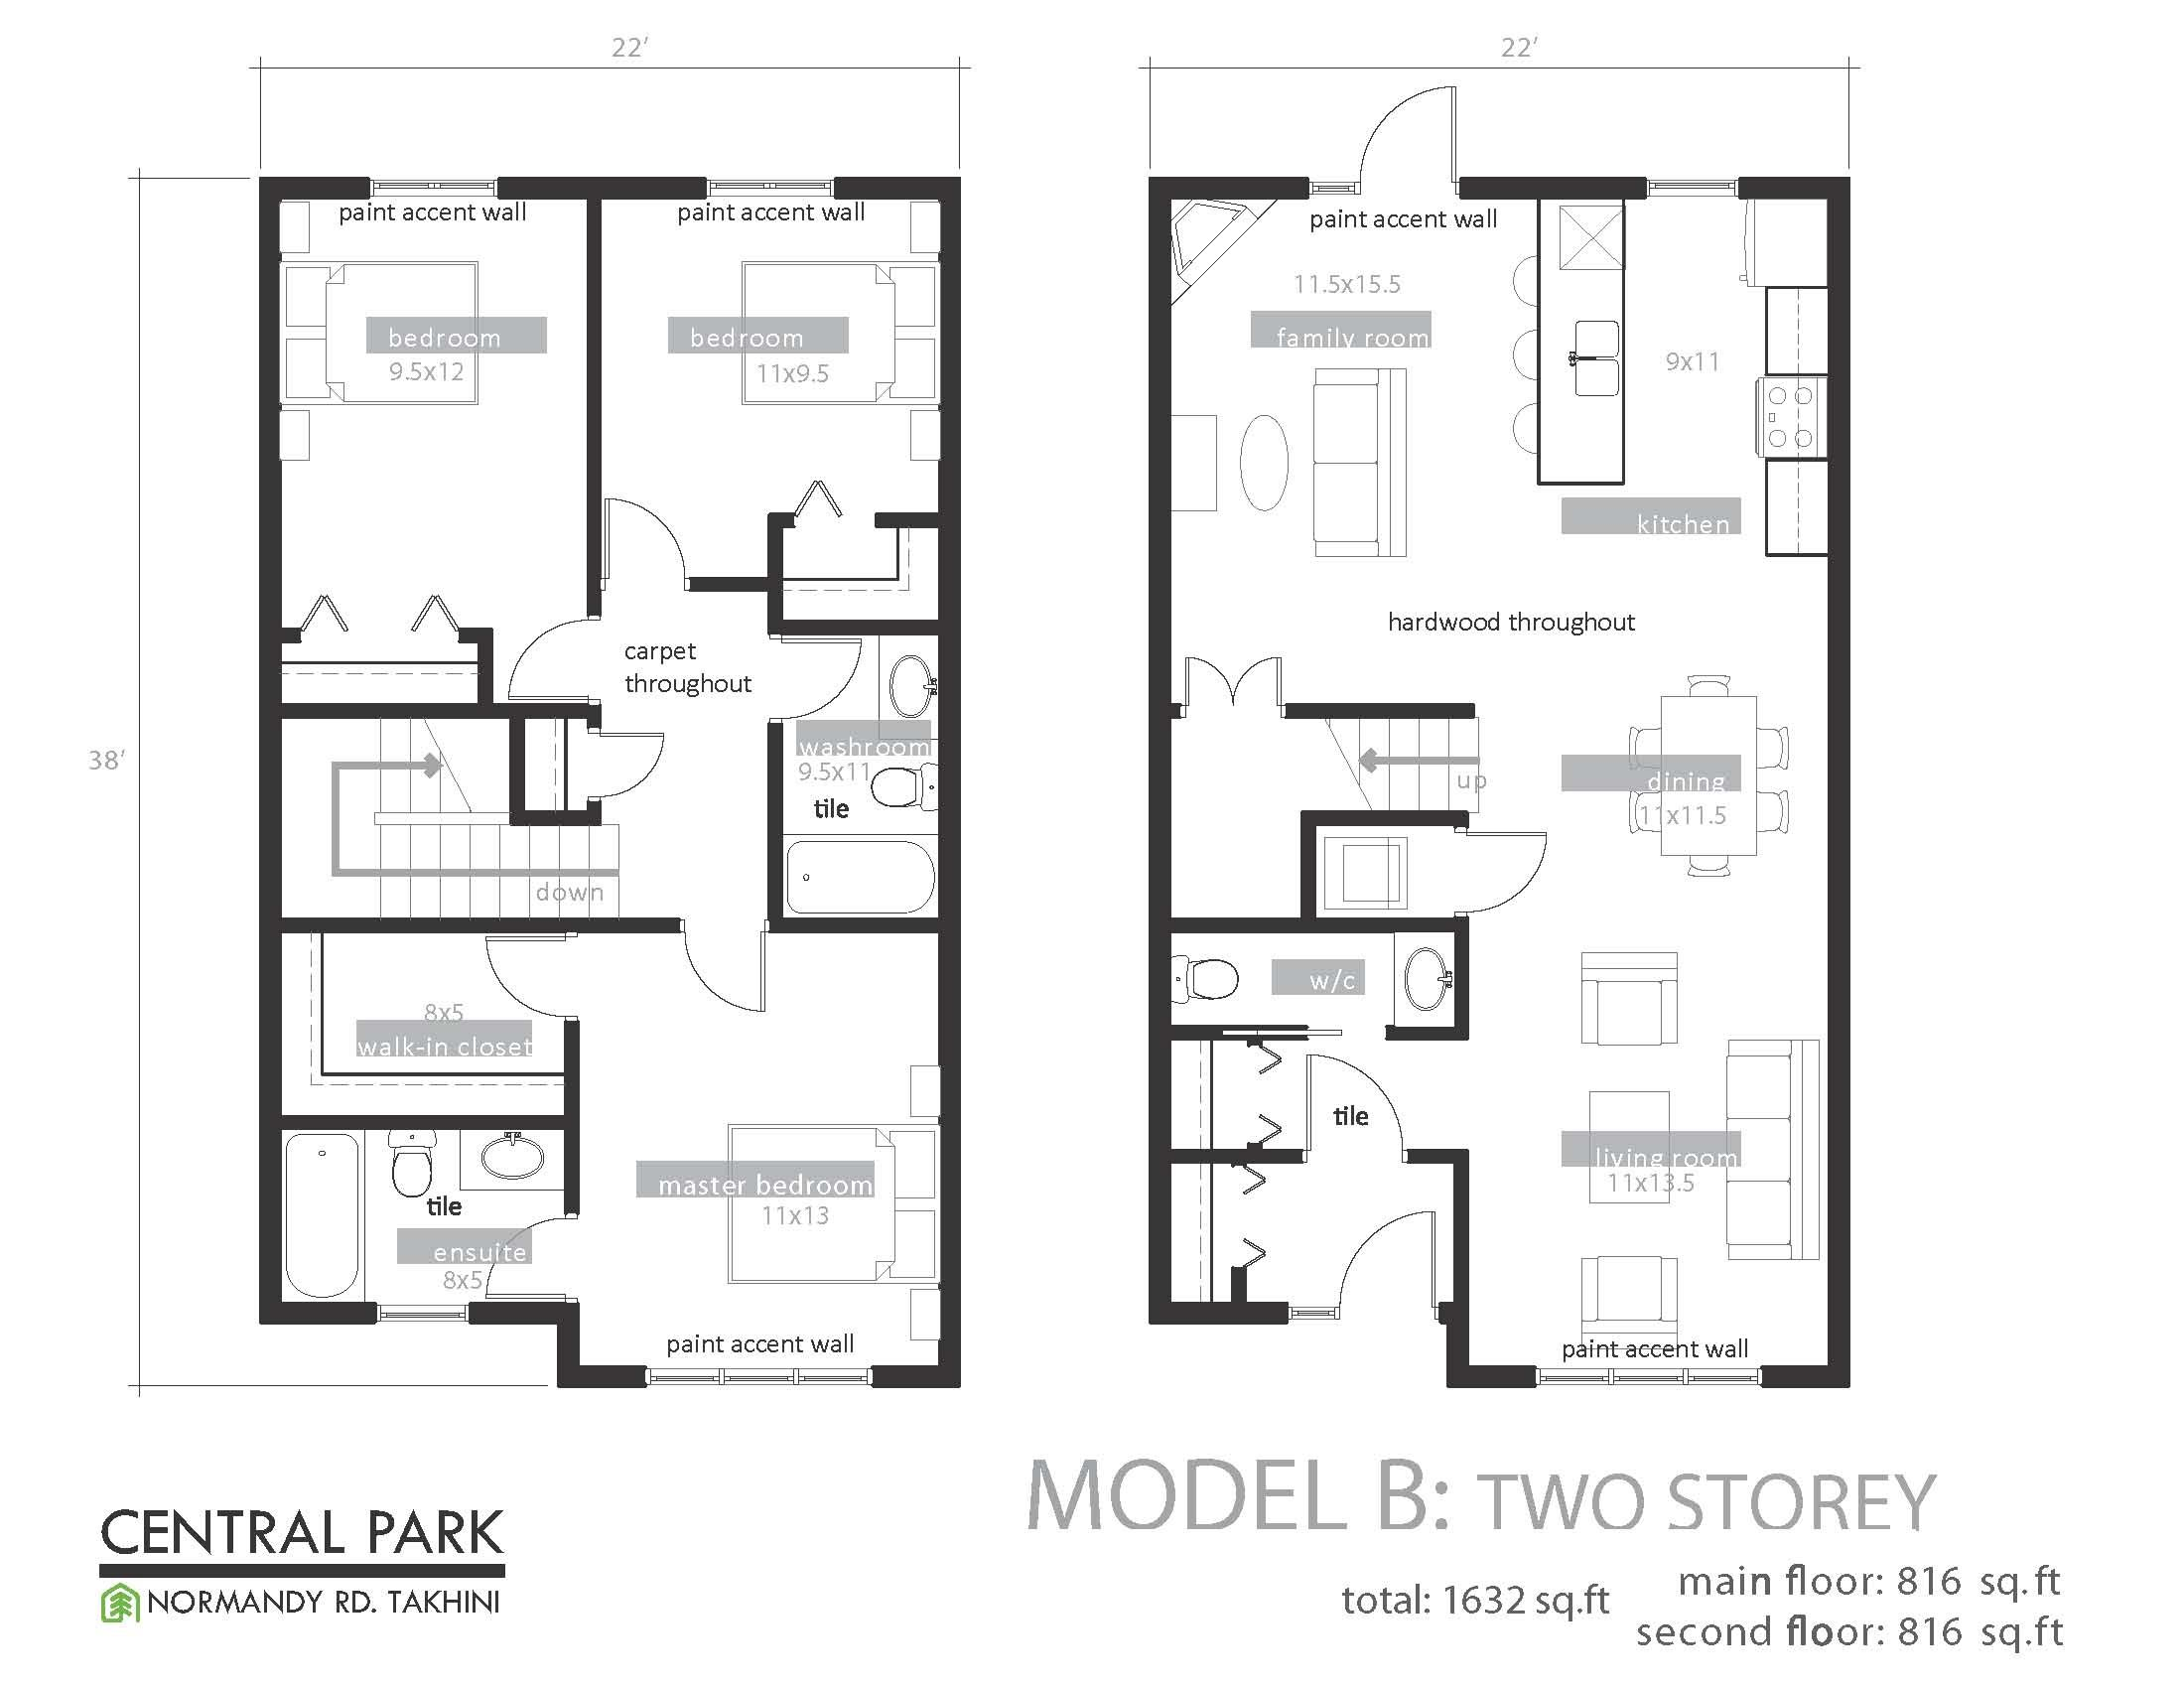 Interior Floor Layout central park development floor plans takhini whitehorse and networks network layout office plang